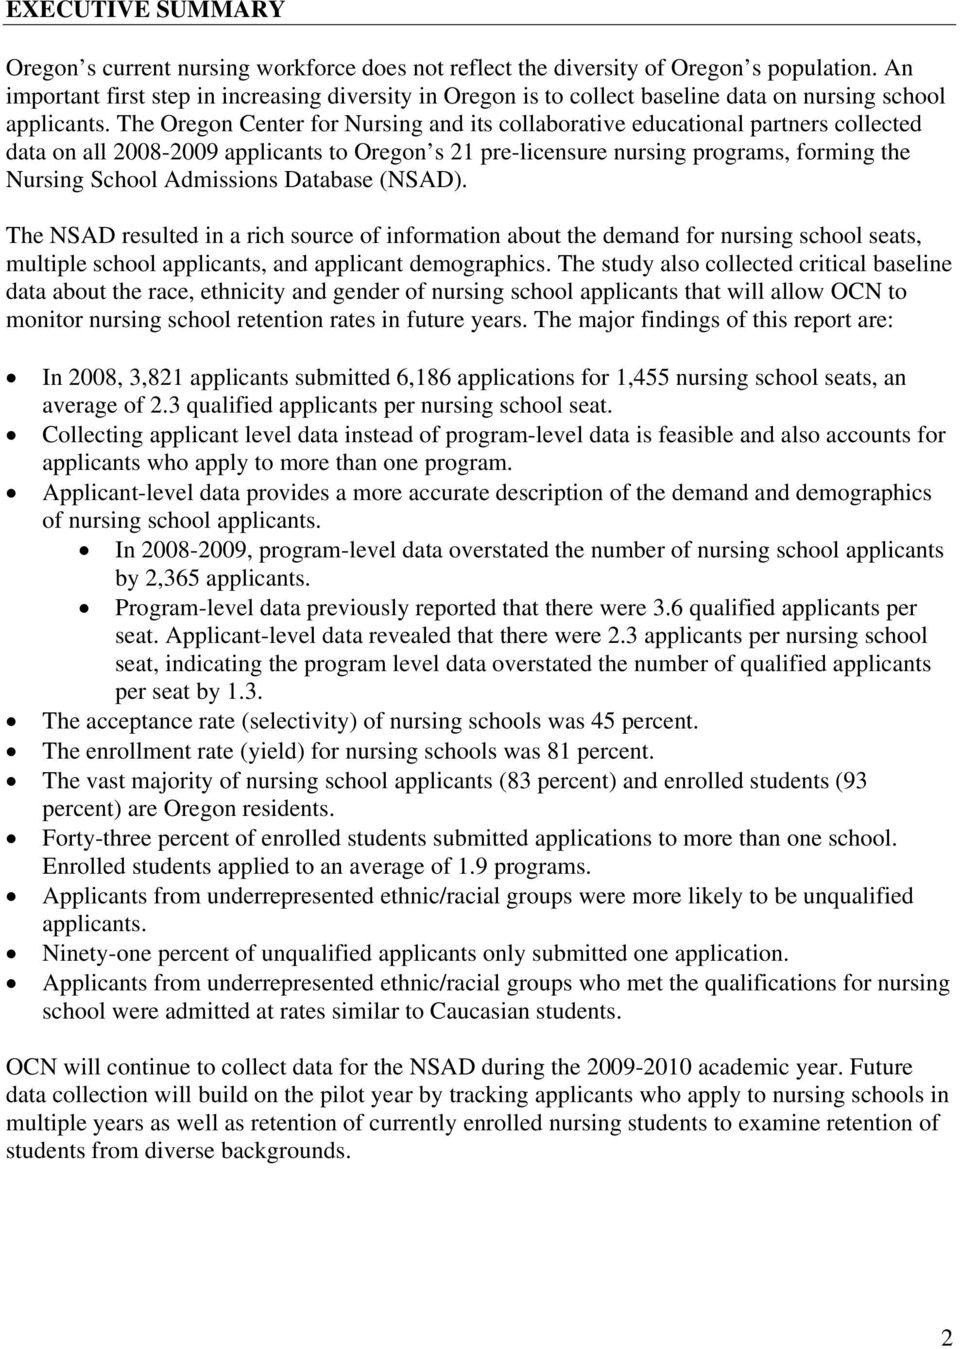 The Oregon Center for Nursing and its collaborative educational partners collected data on all 2008-2009 applicants to Oregon s 21 pre-licensure nursing programs, forming the Nursing School